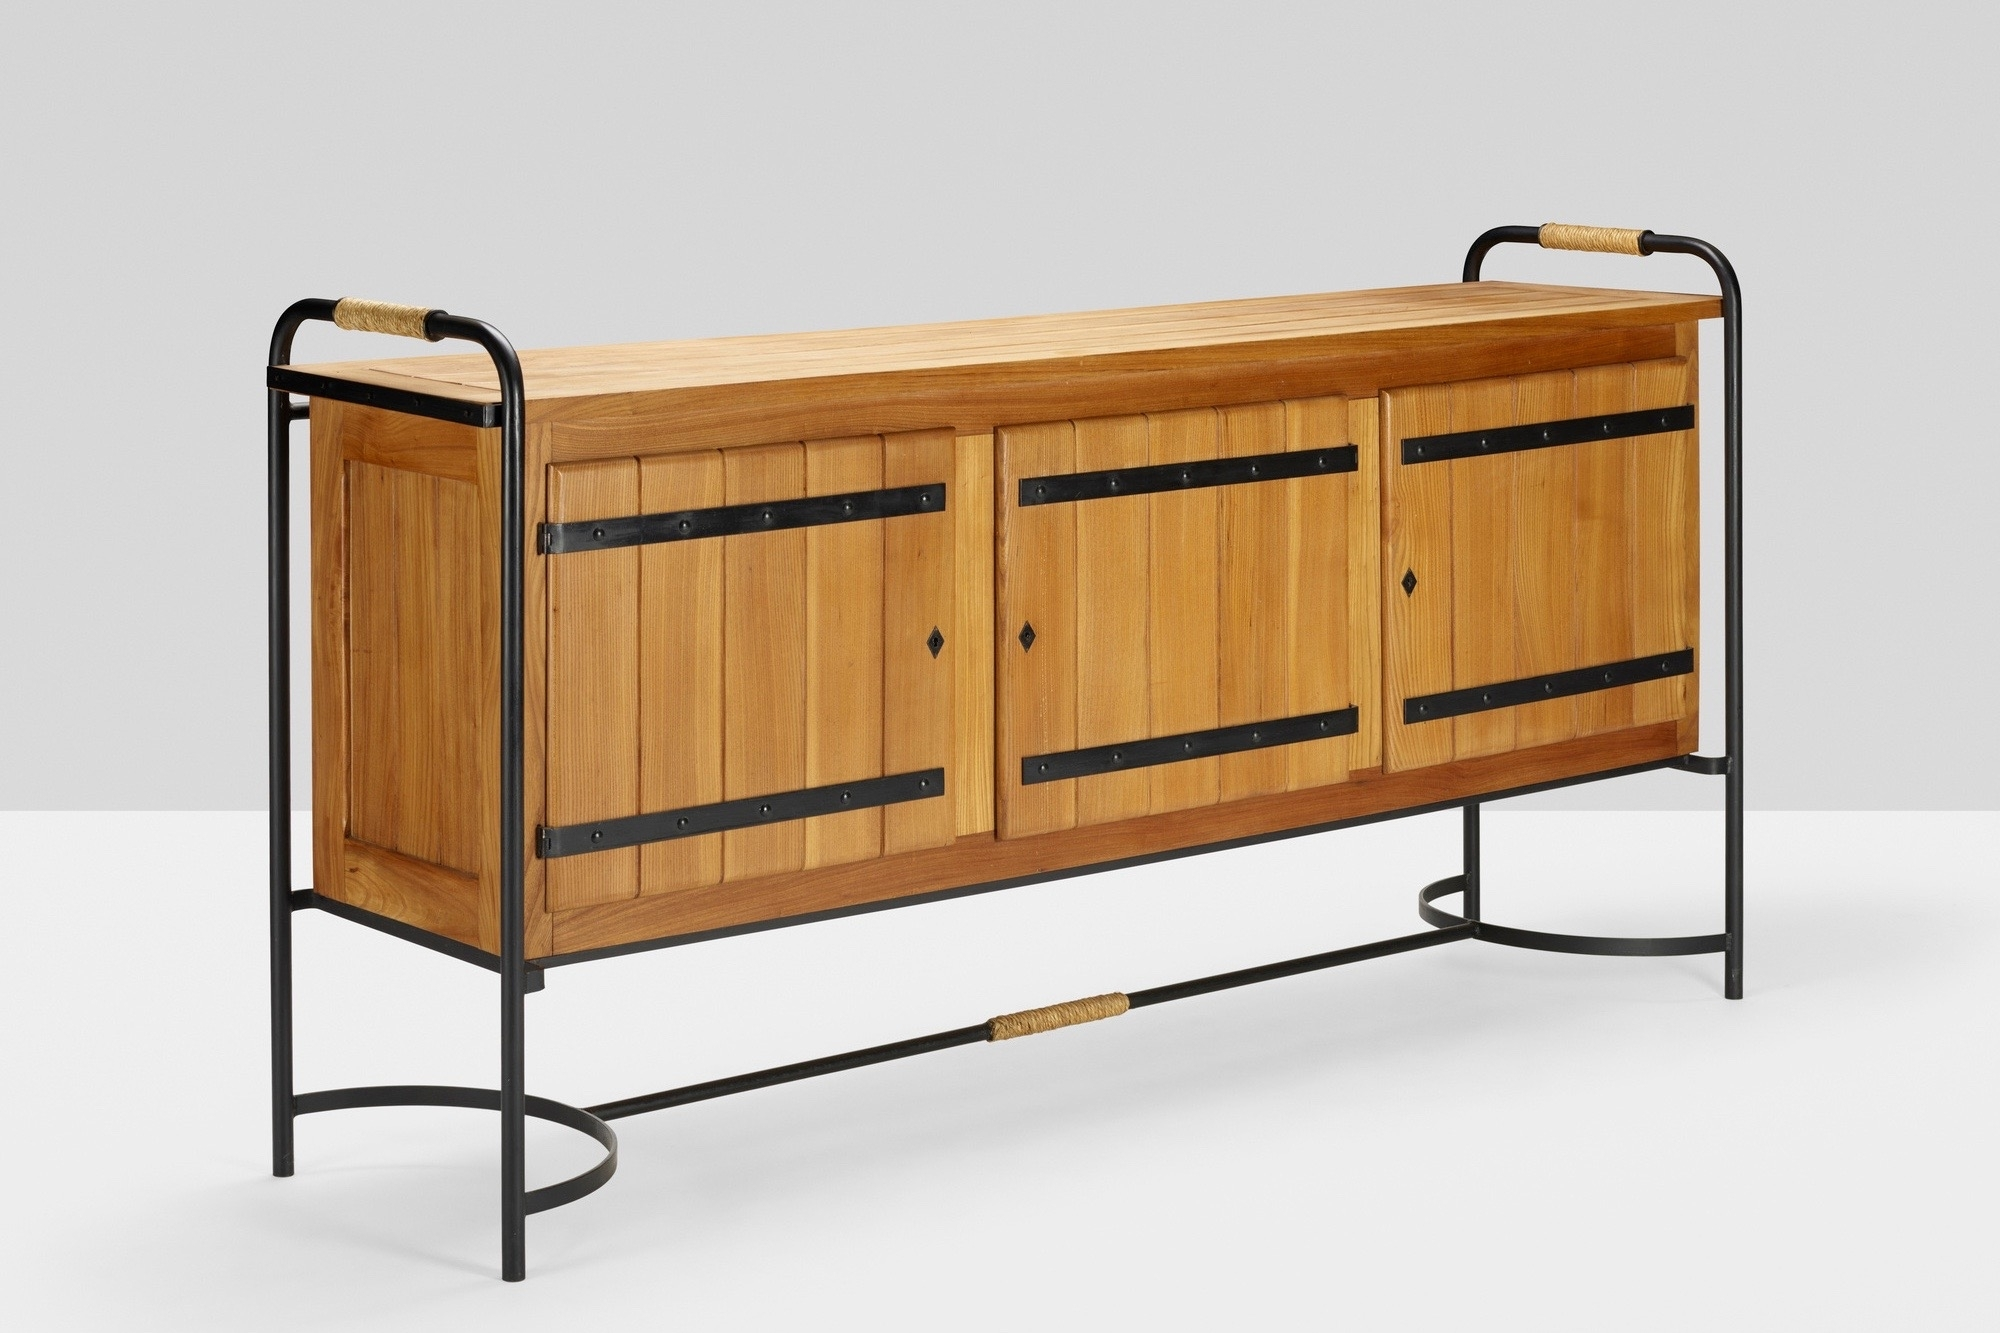 Cabinets & Sideboards – Vivamus Intended For Iron Sideboards (View 9 of 30)